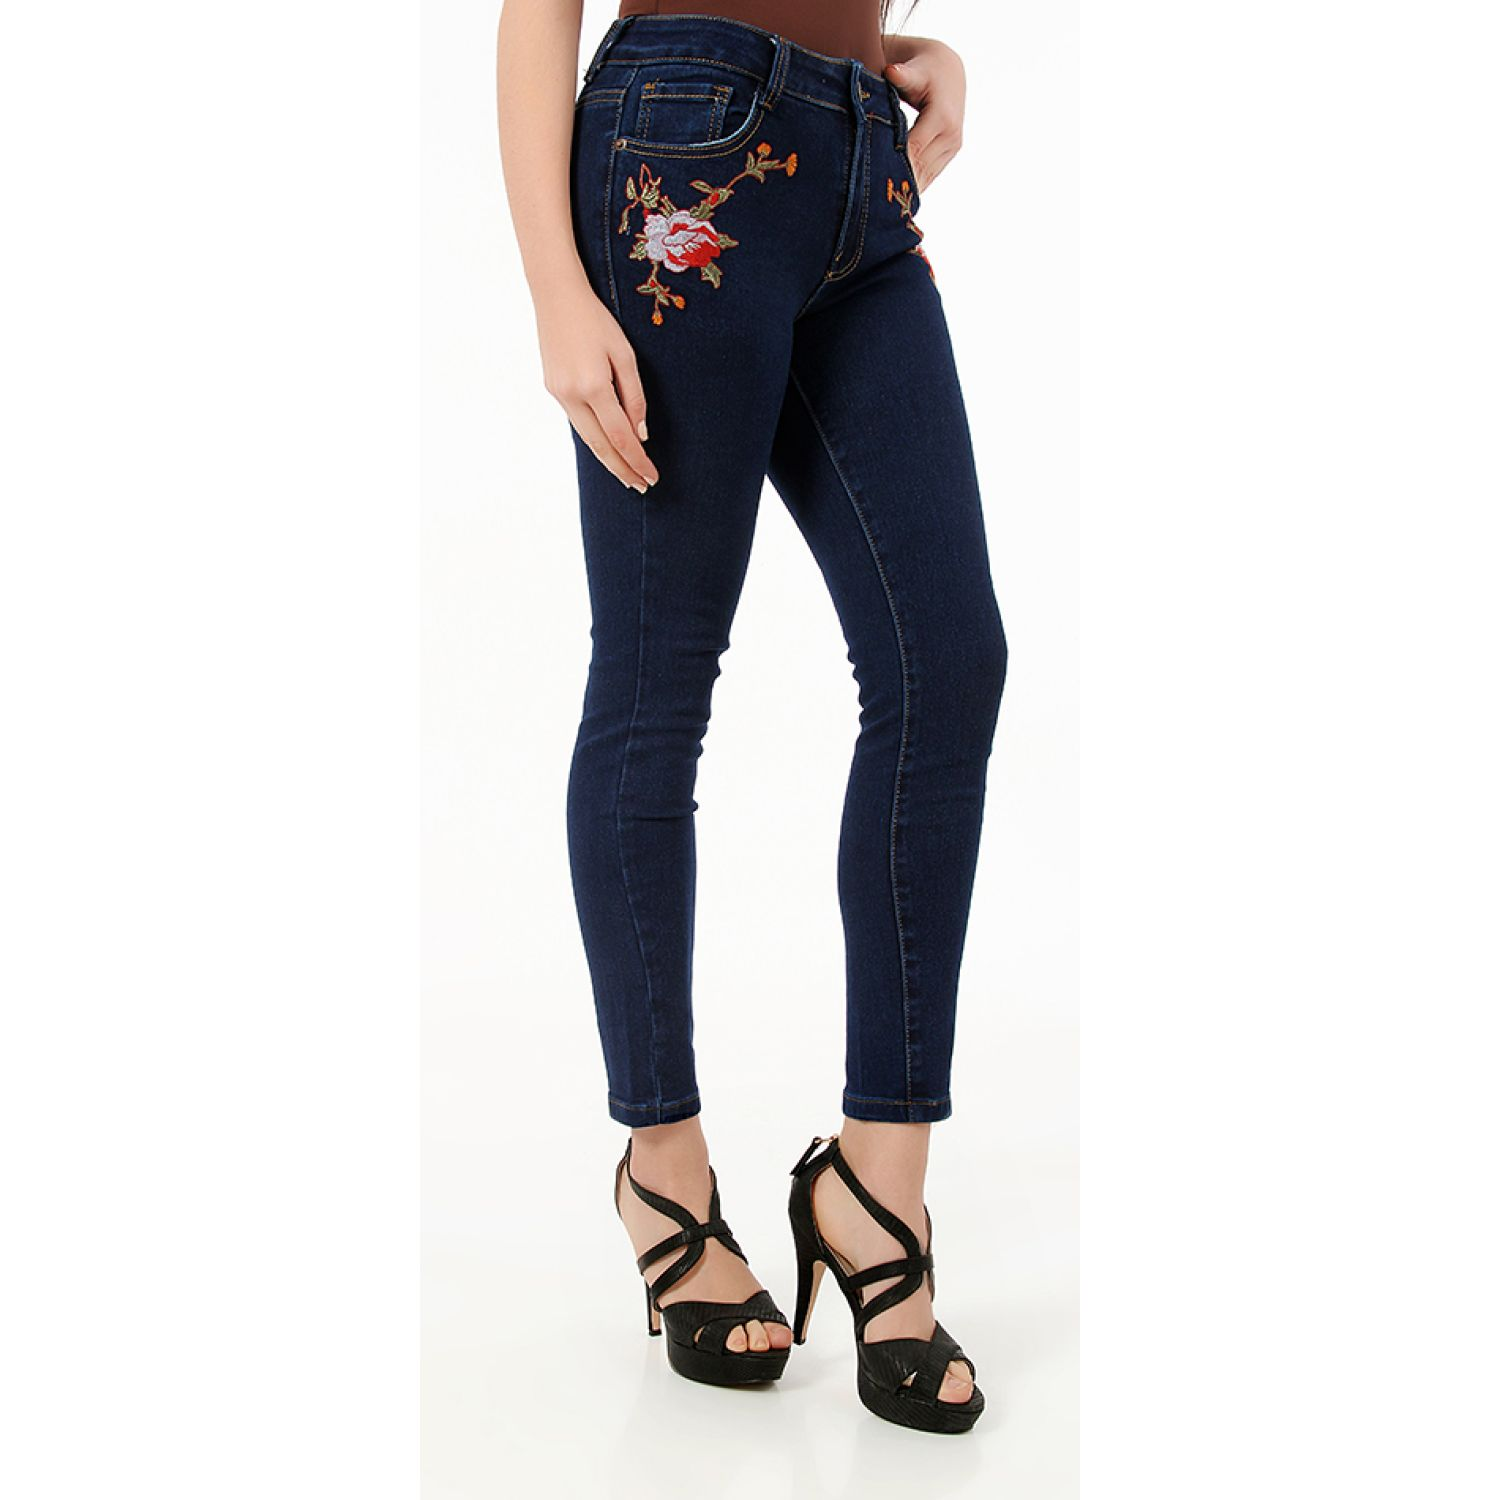 CUSTER BRODERIEW Cristal Jeans